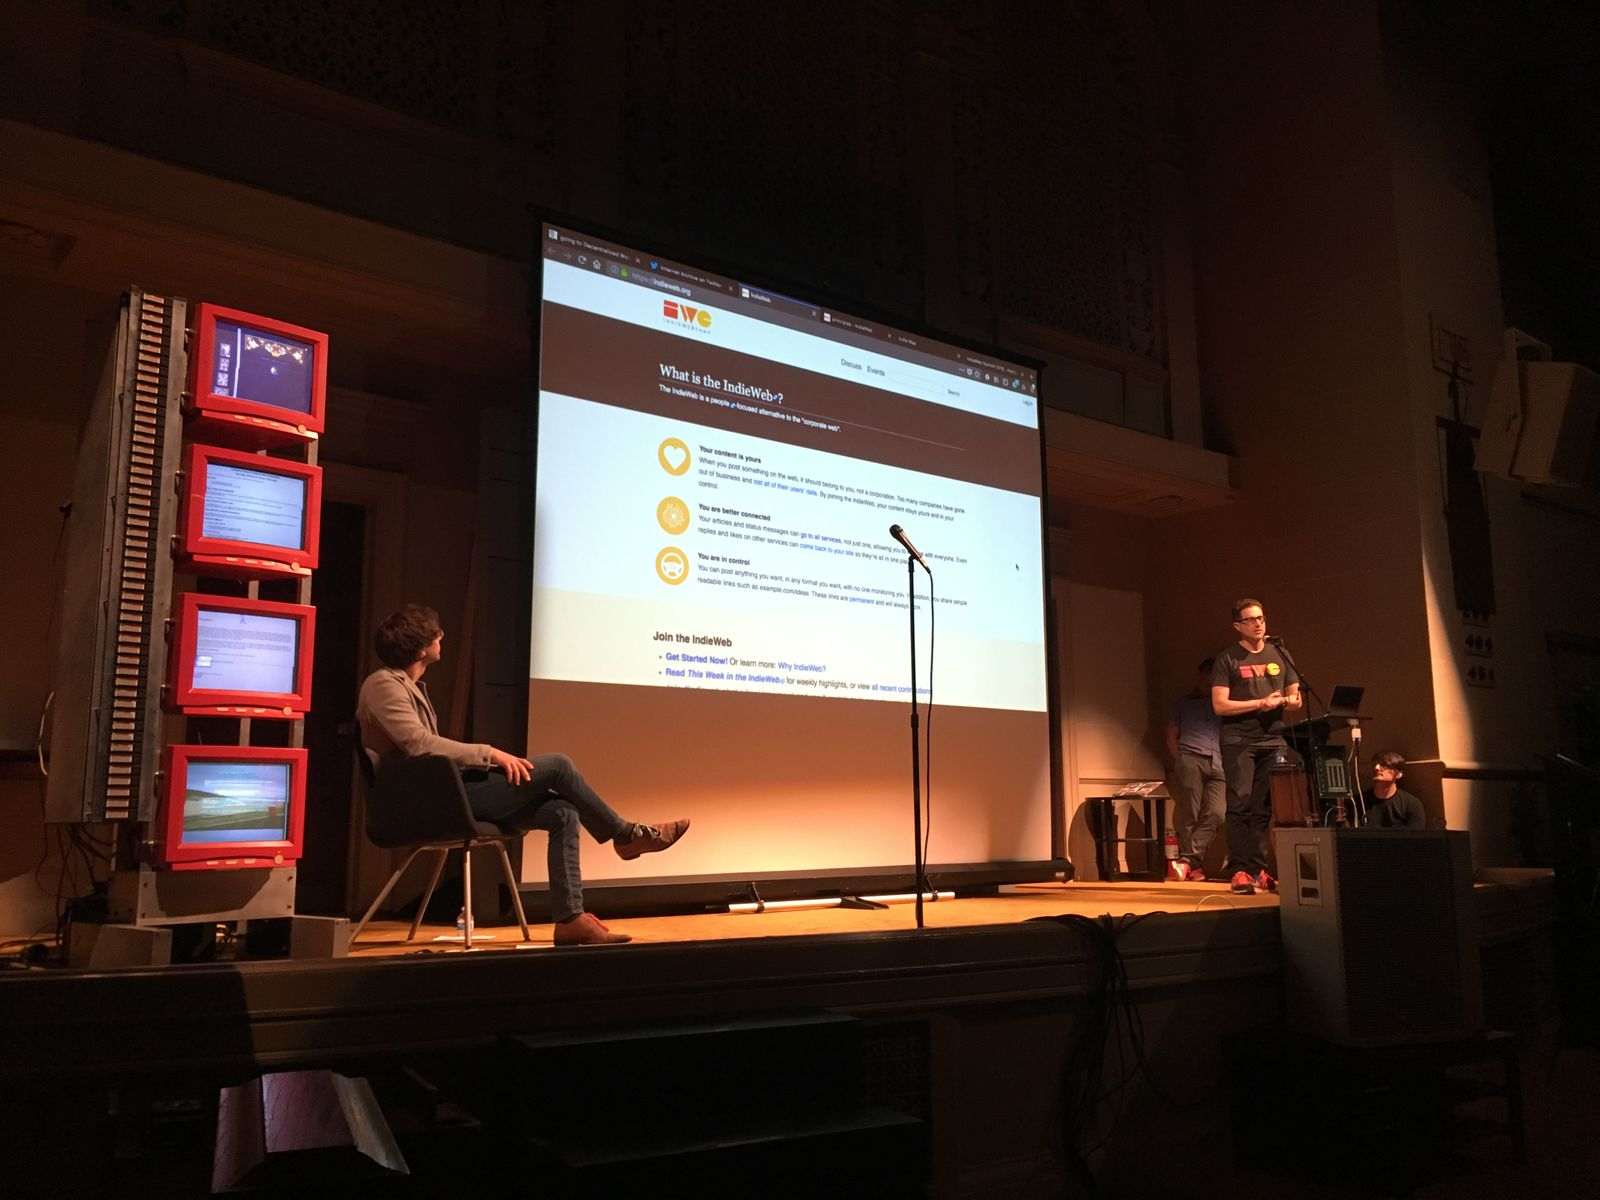 Tantek presenting at the Decentralized Web Meetup at the Internet Archive